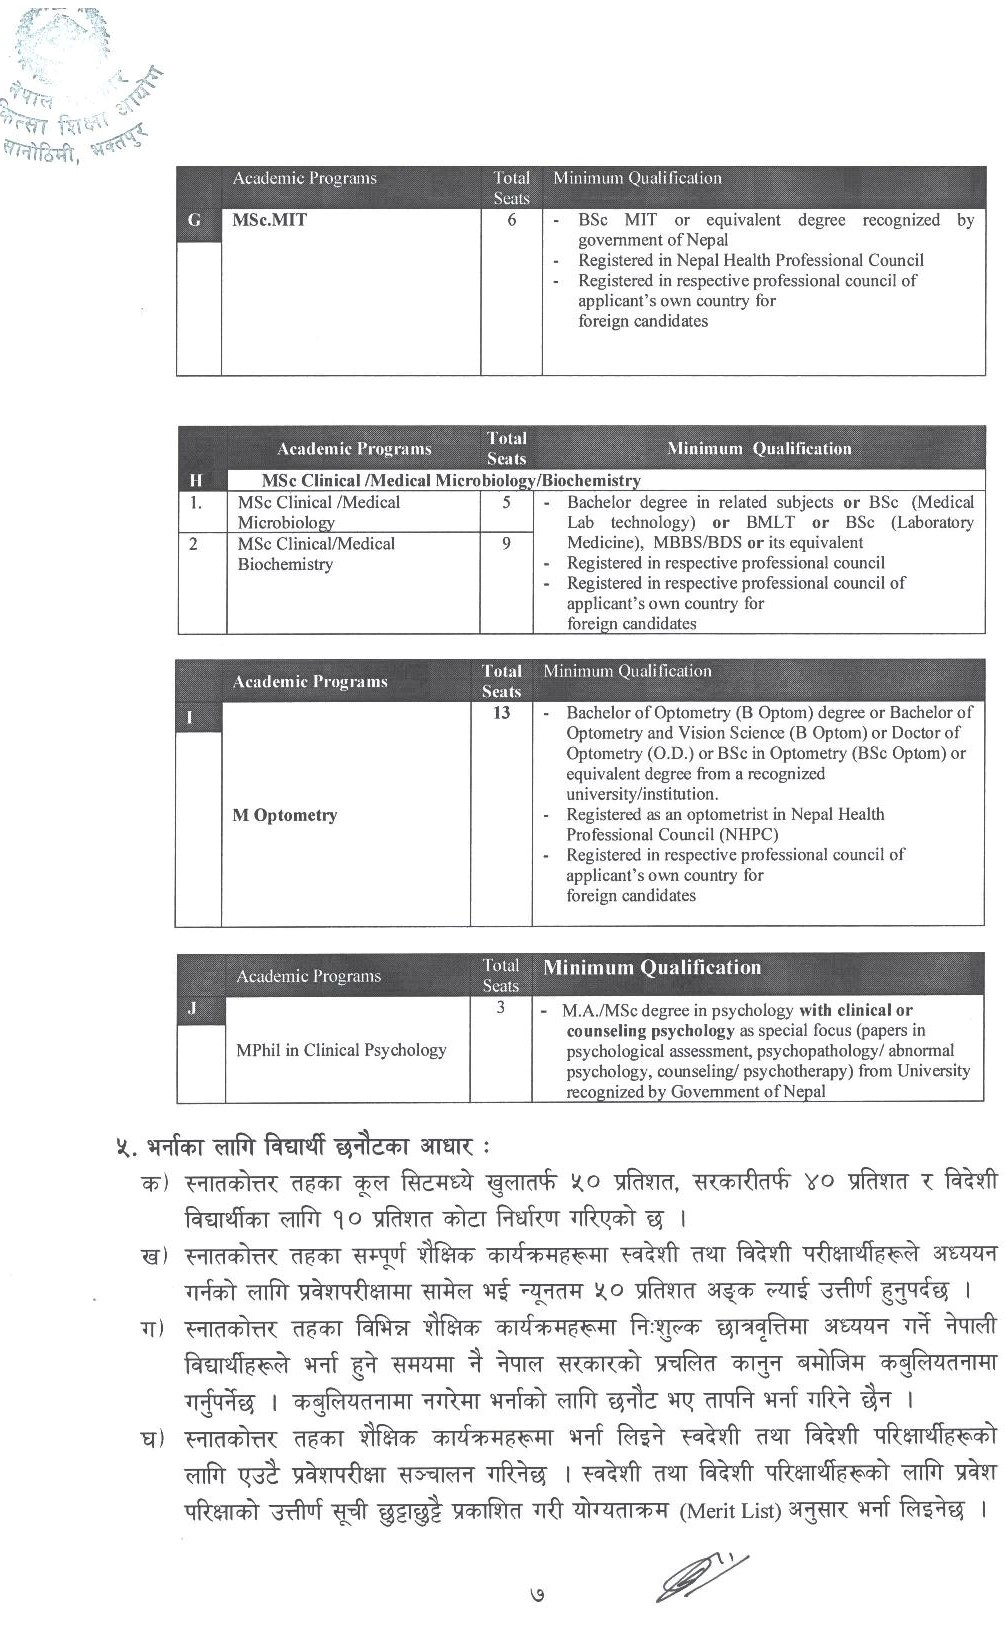 Medical Education Commission Notice